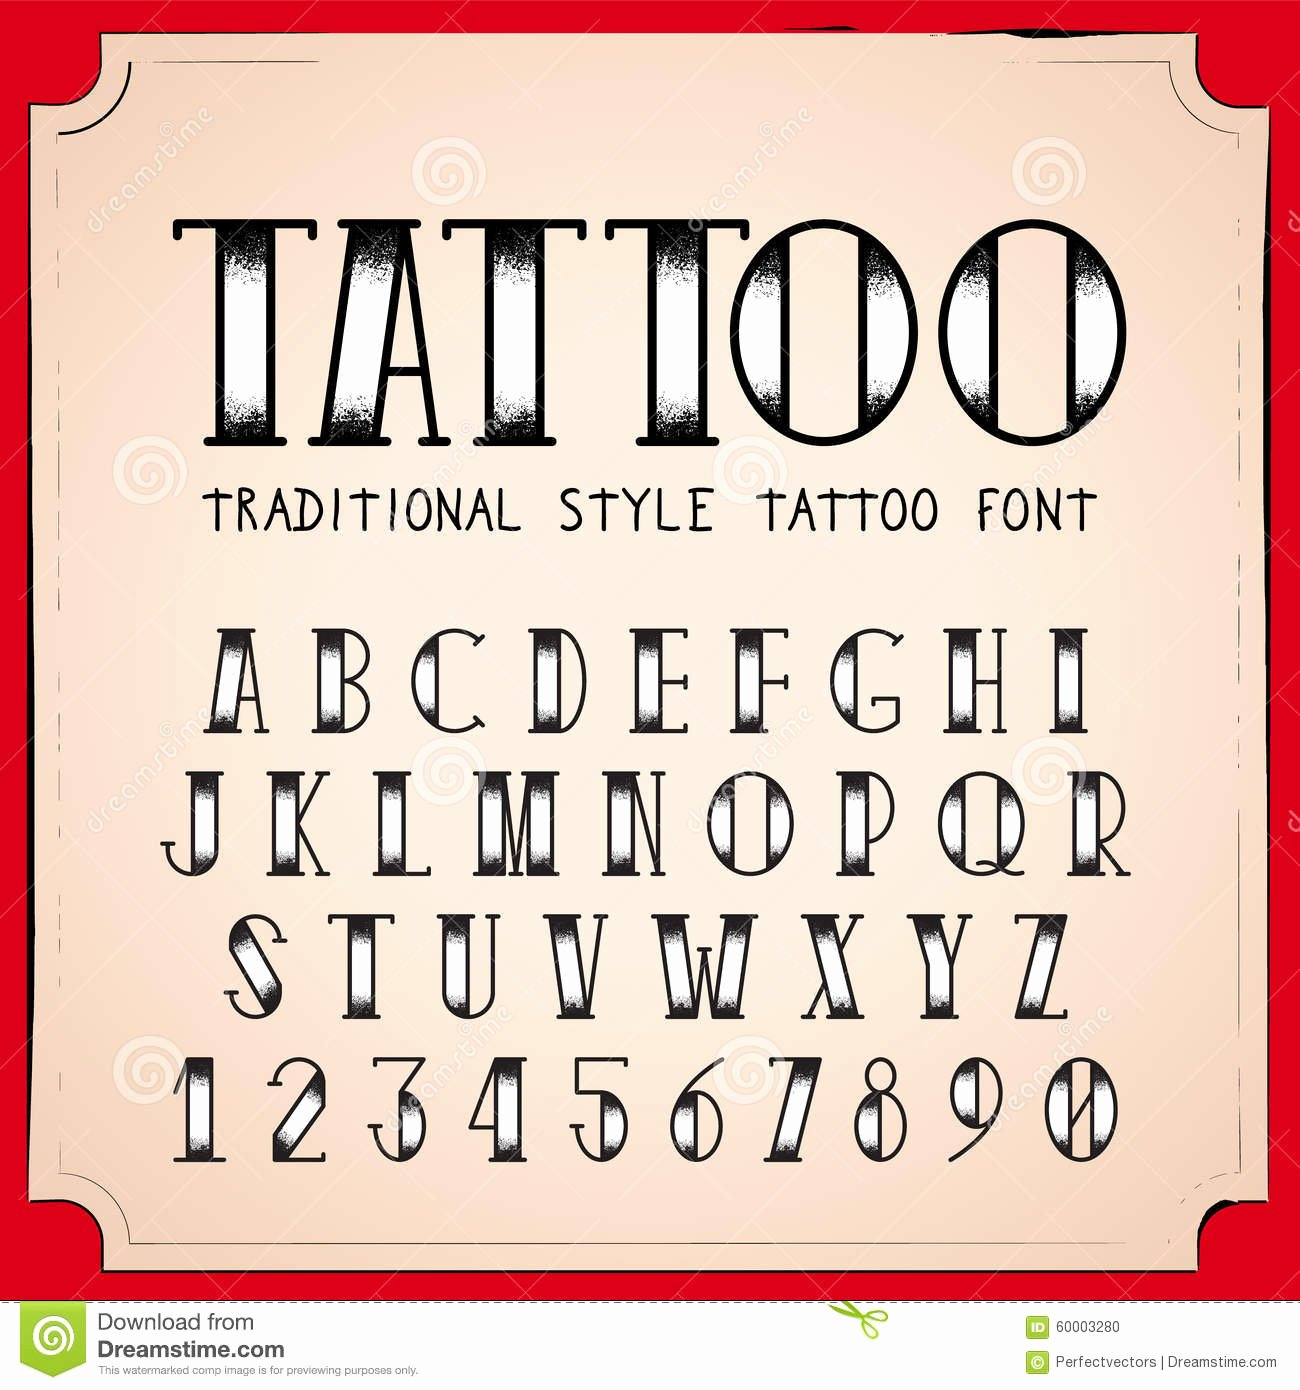 Old School Tattoo Font New Alphabet Tattoo Vector Font Vector Illustration